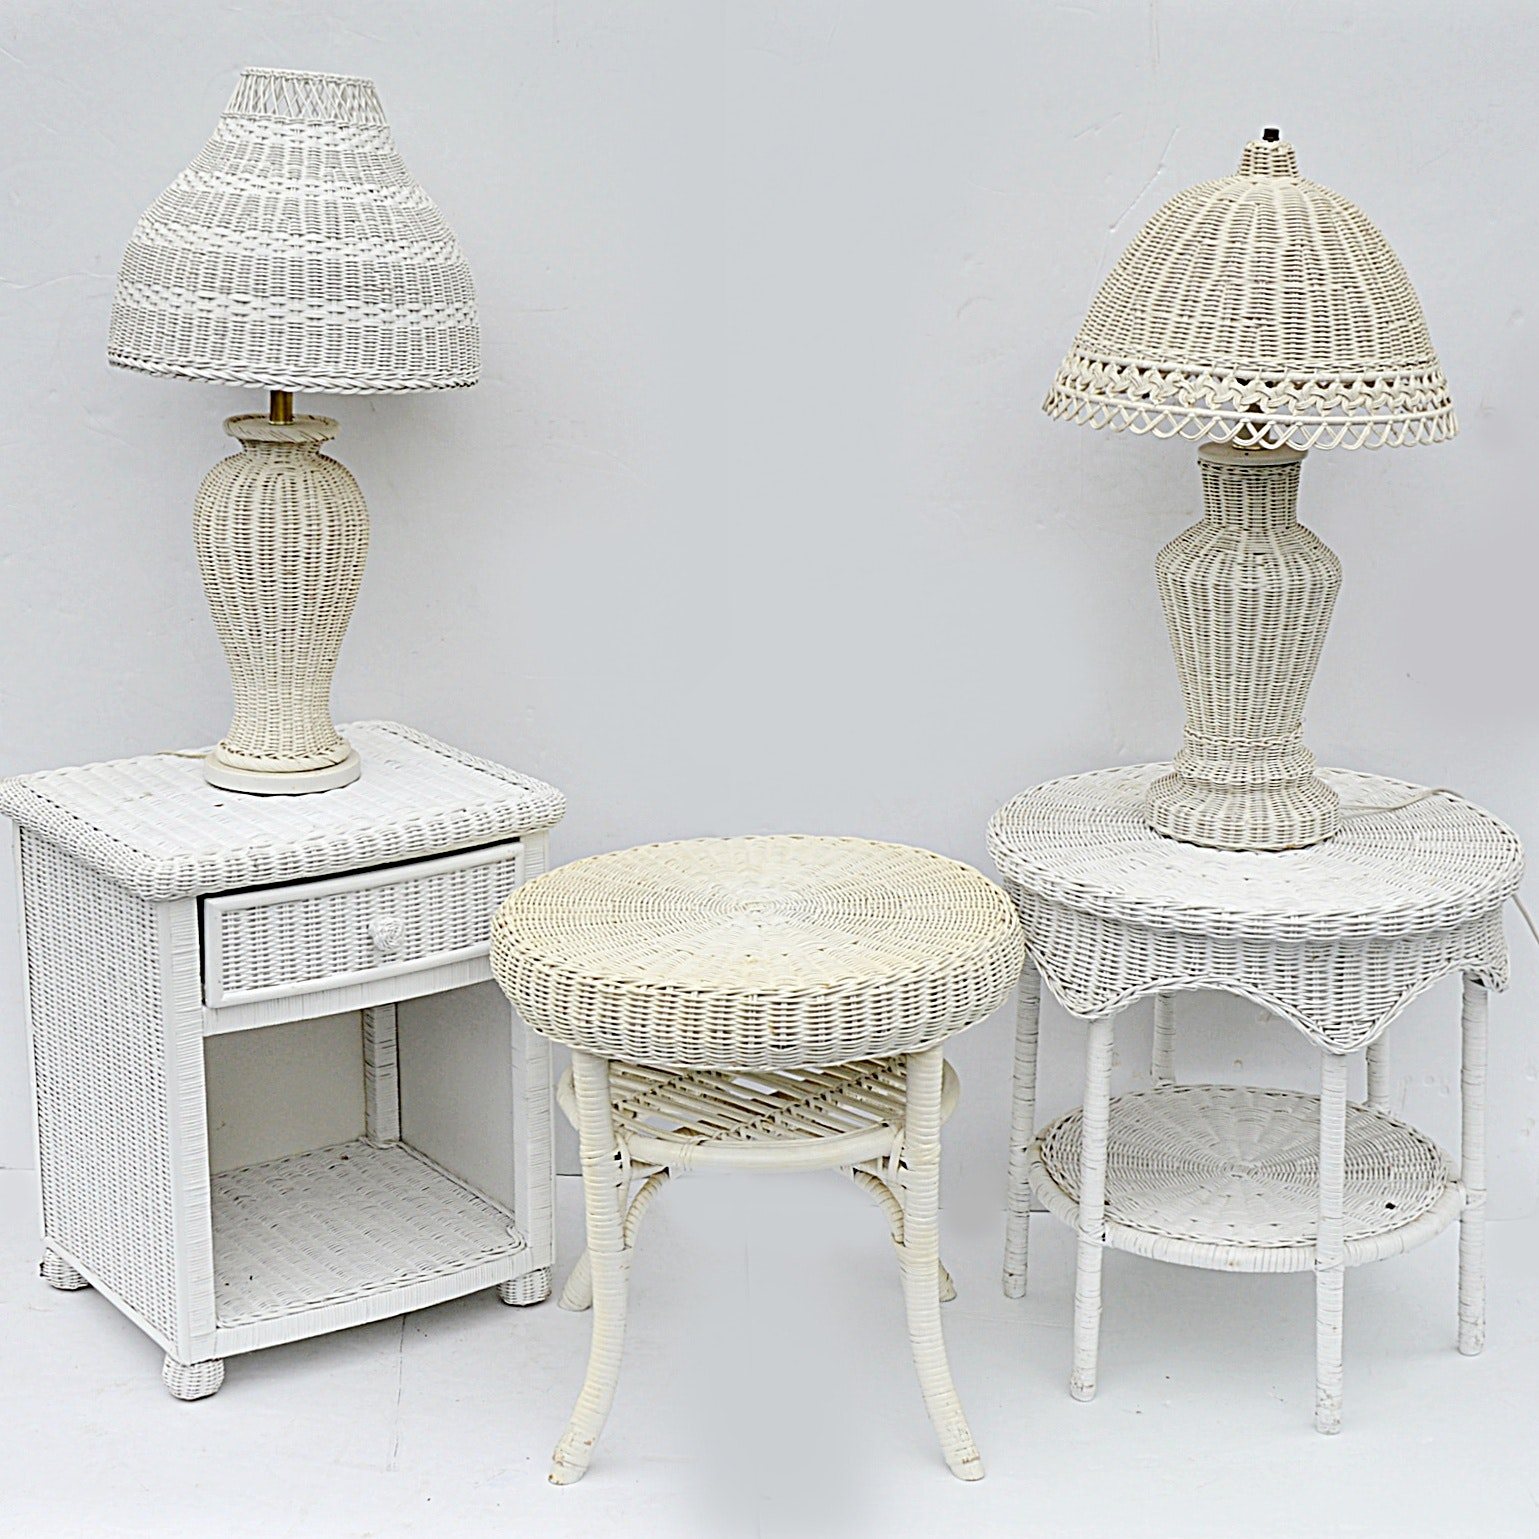 Three White Wicker Tables and Two Wicker Lamps